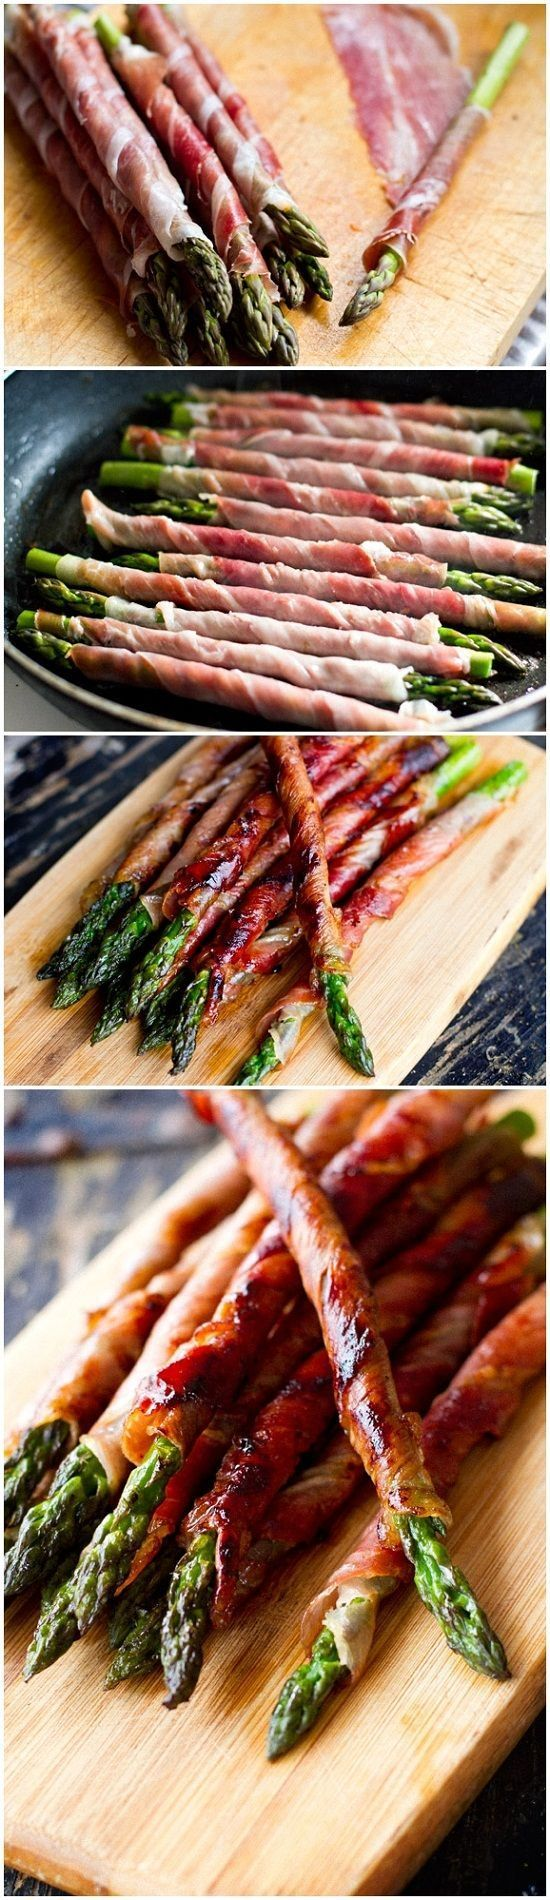 Prosciutto wrapped asparagus. Delicious